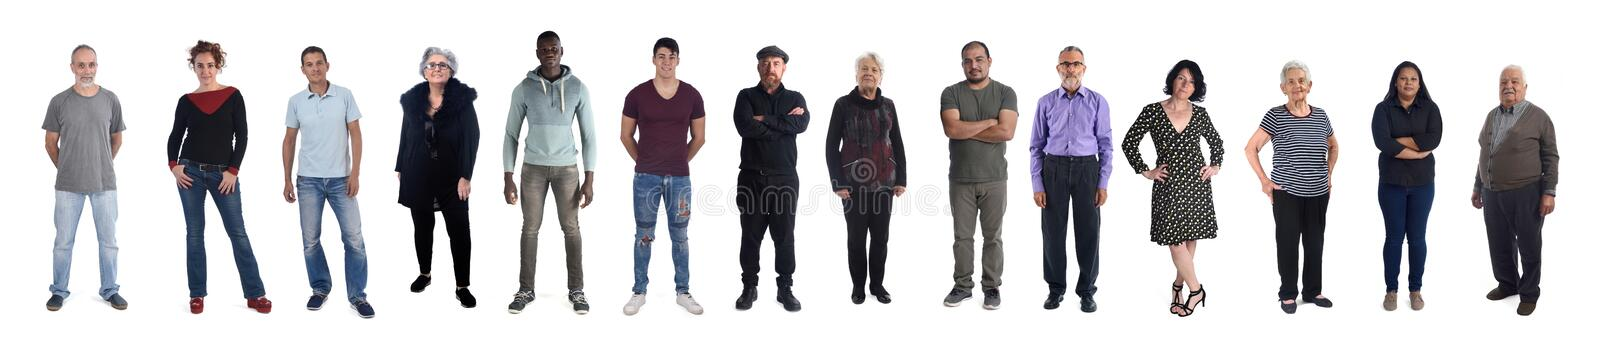 Group of mixed people royalty free stock images